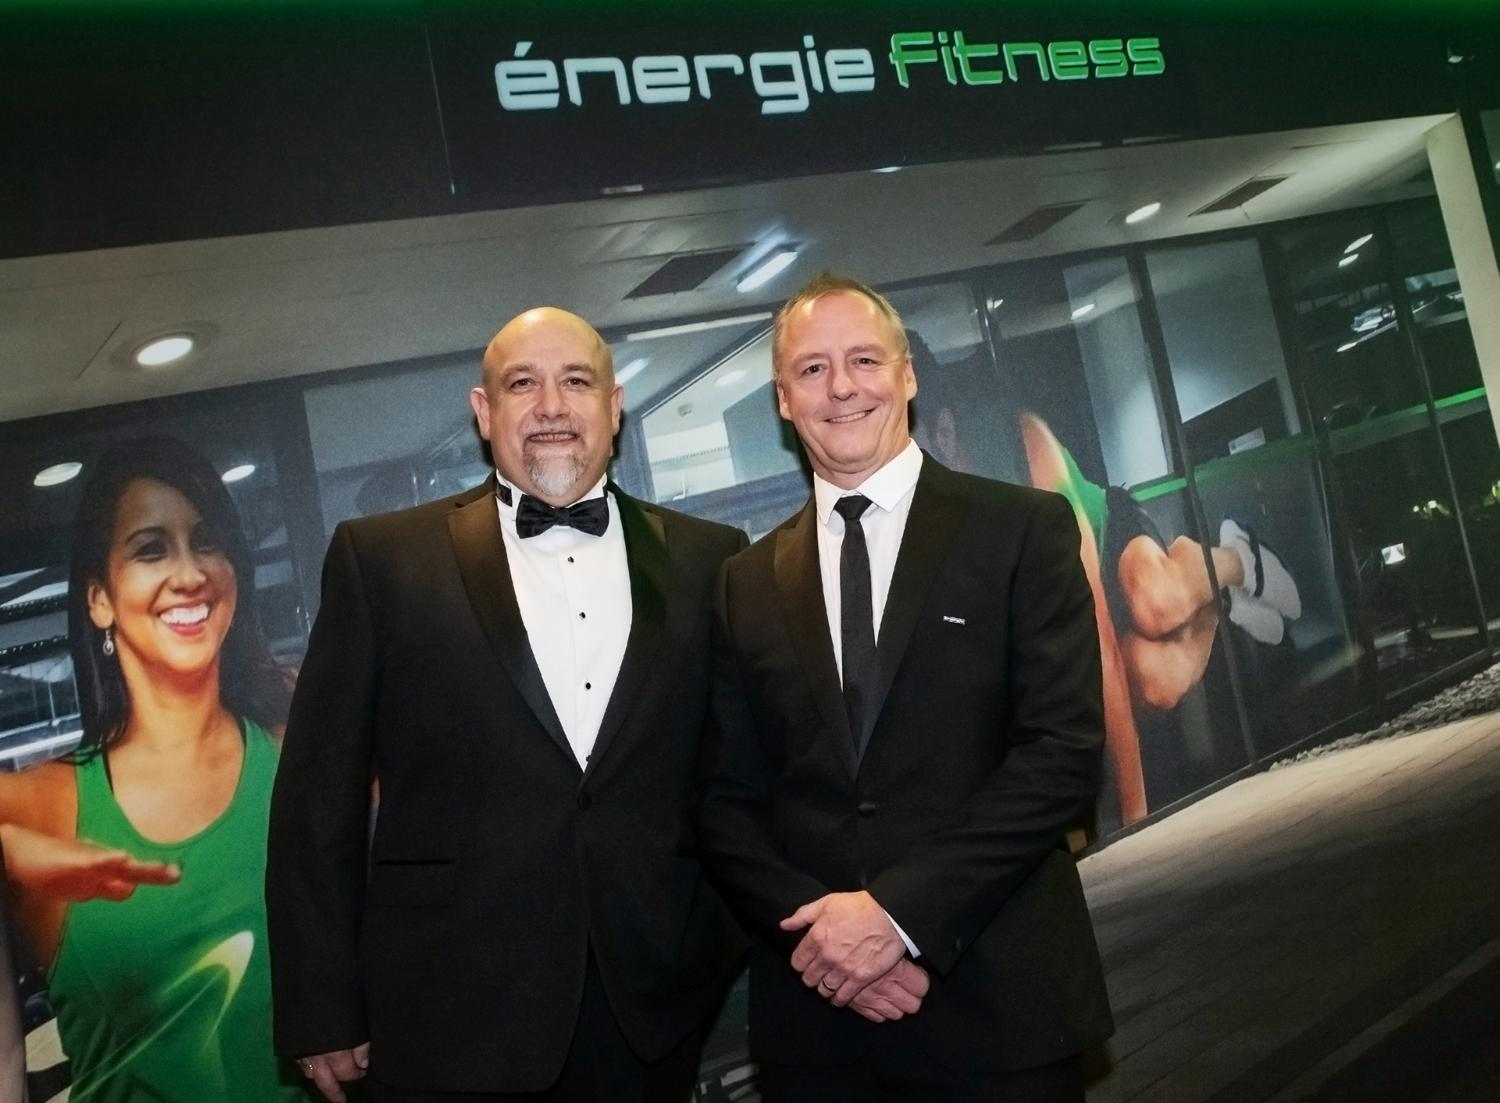 Neil King (right), has been named CEO while founder Jan Spaticchia (left) takes up a strategic role as executive chair